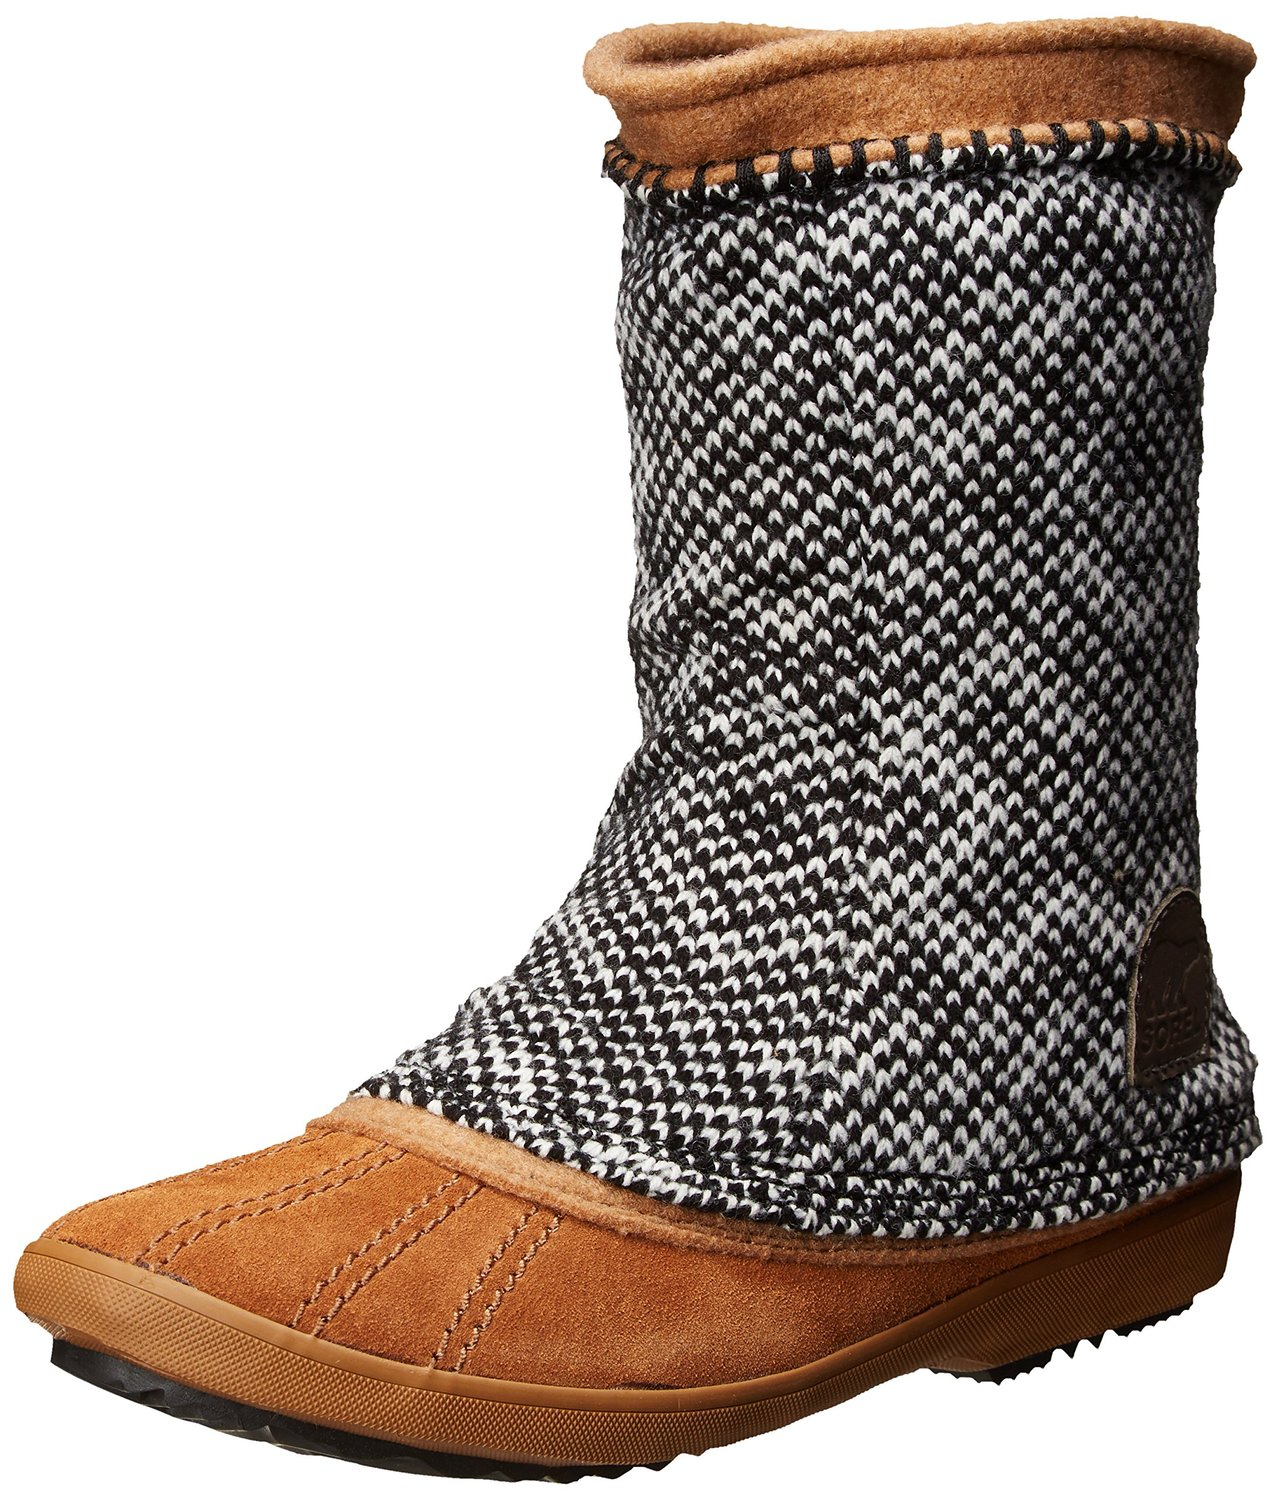 Shop for Sorel Deals at REI - FREE SHIPPING With $50 minimum purchase. Top quality, great selection and expert advice you can trust. % Satisfaction Guarantee.